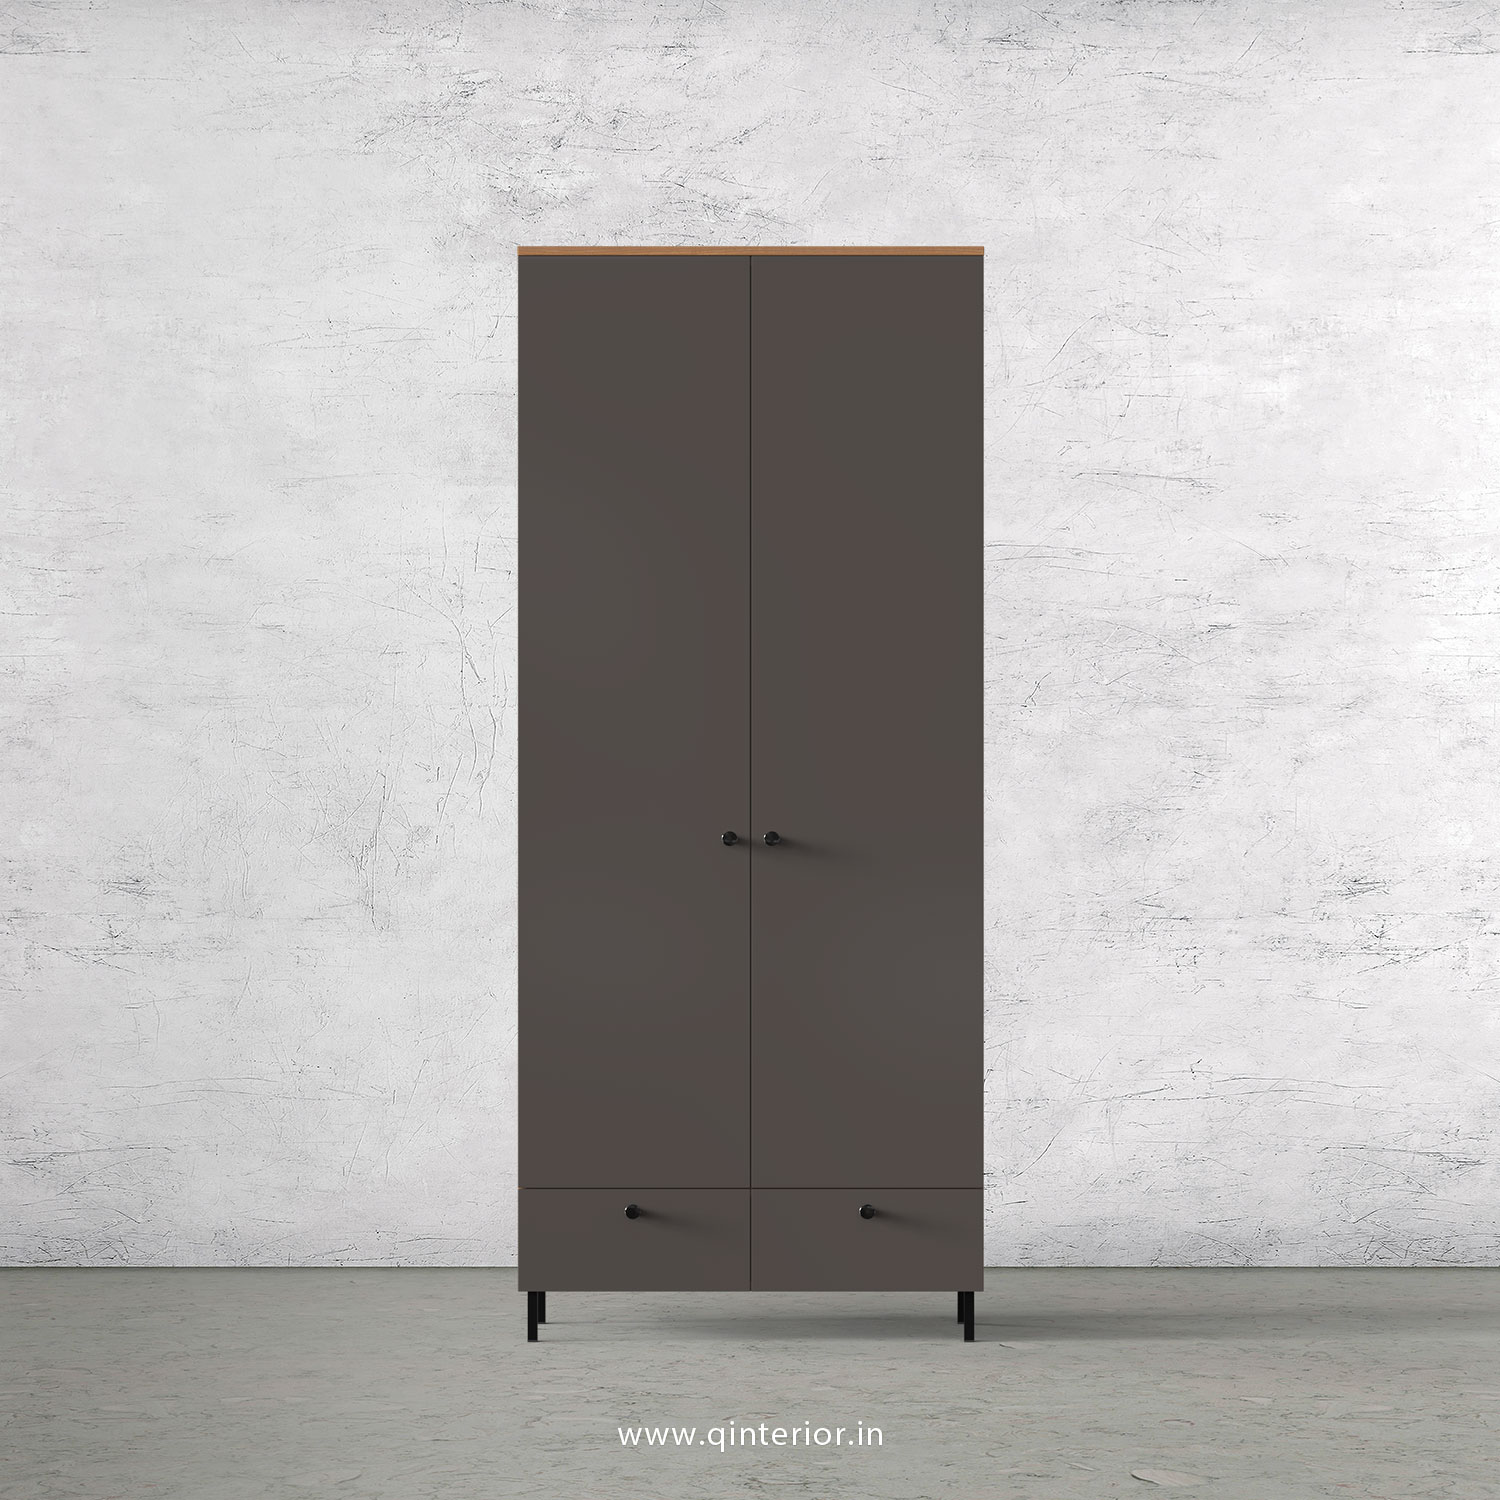 Lambent 2 Door Wardrobe in Oak and Slate Finish – DWRD002 C19